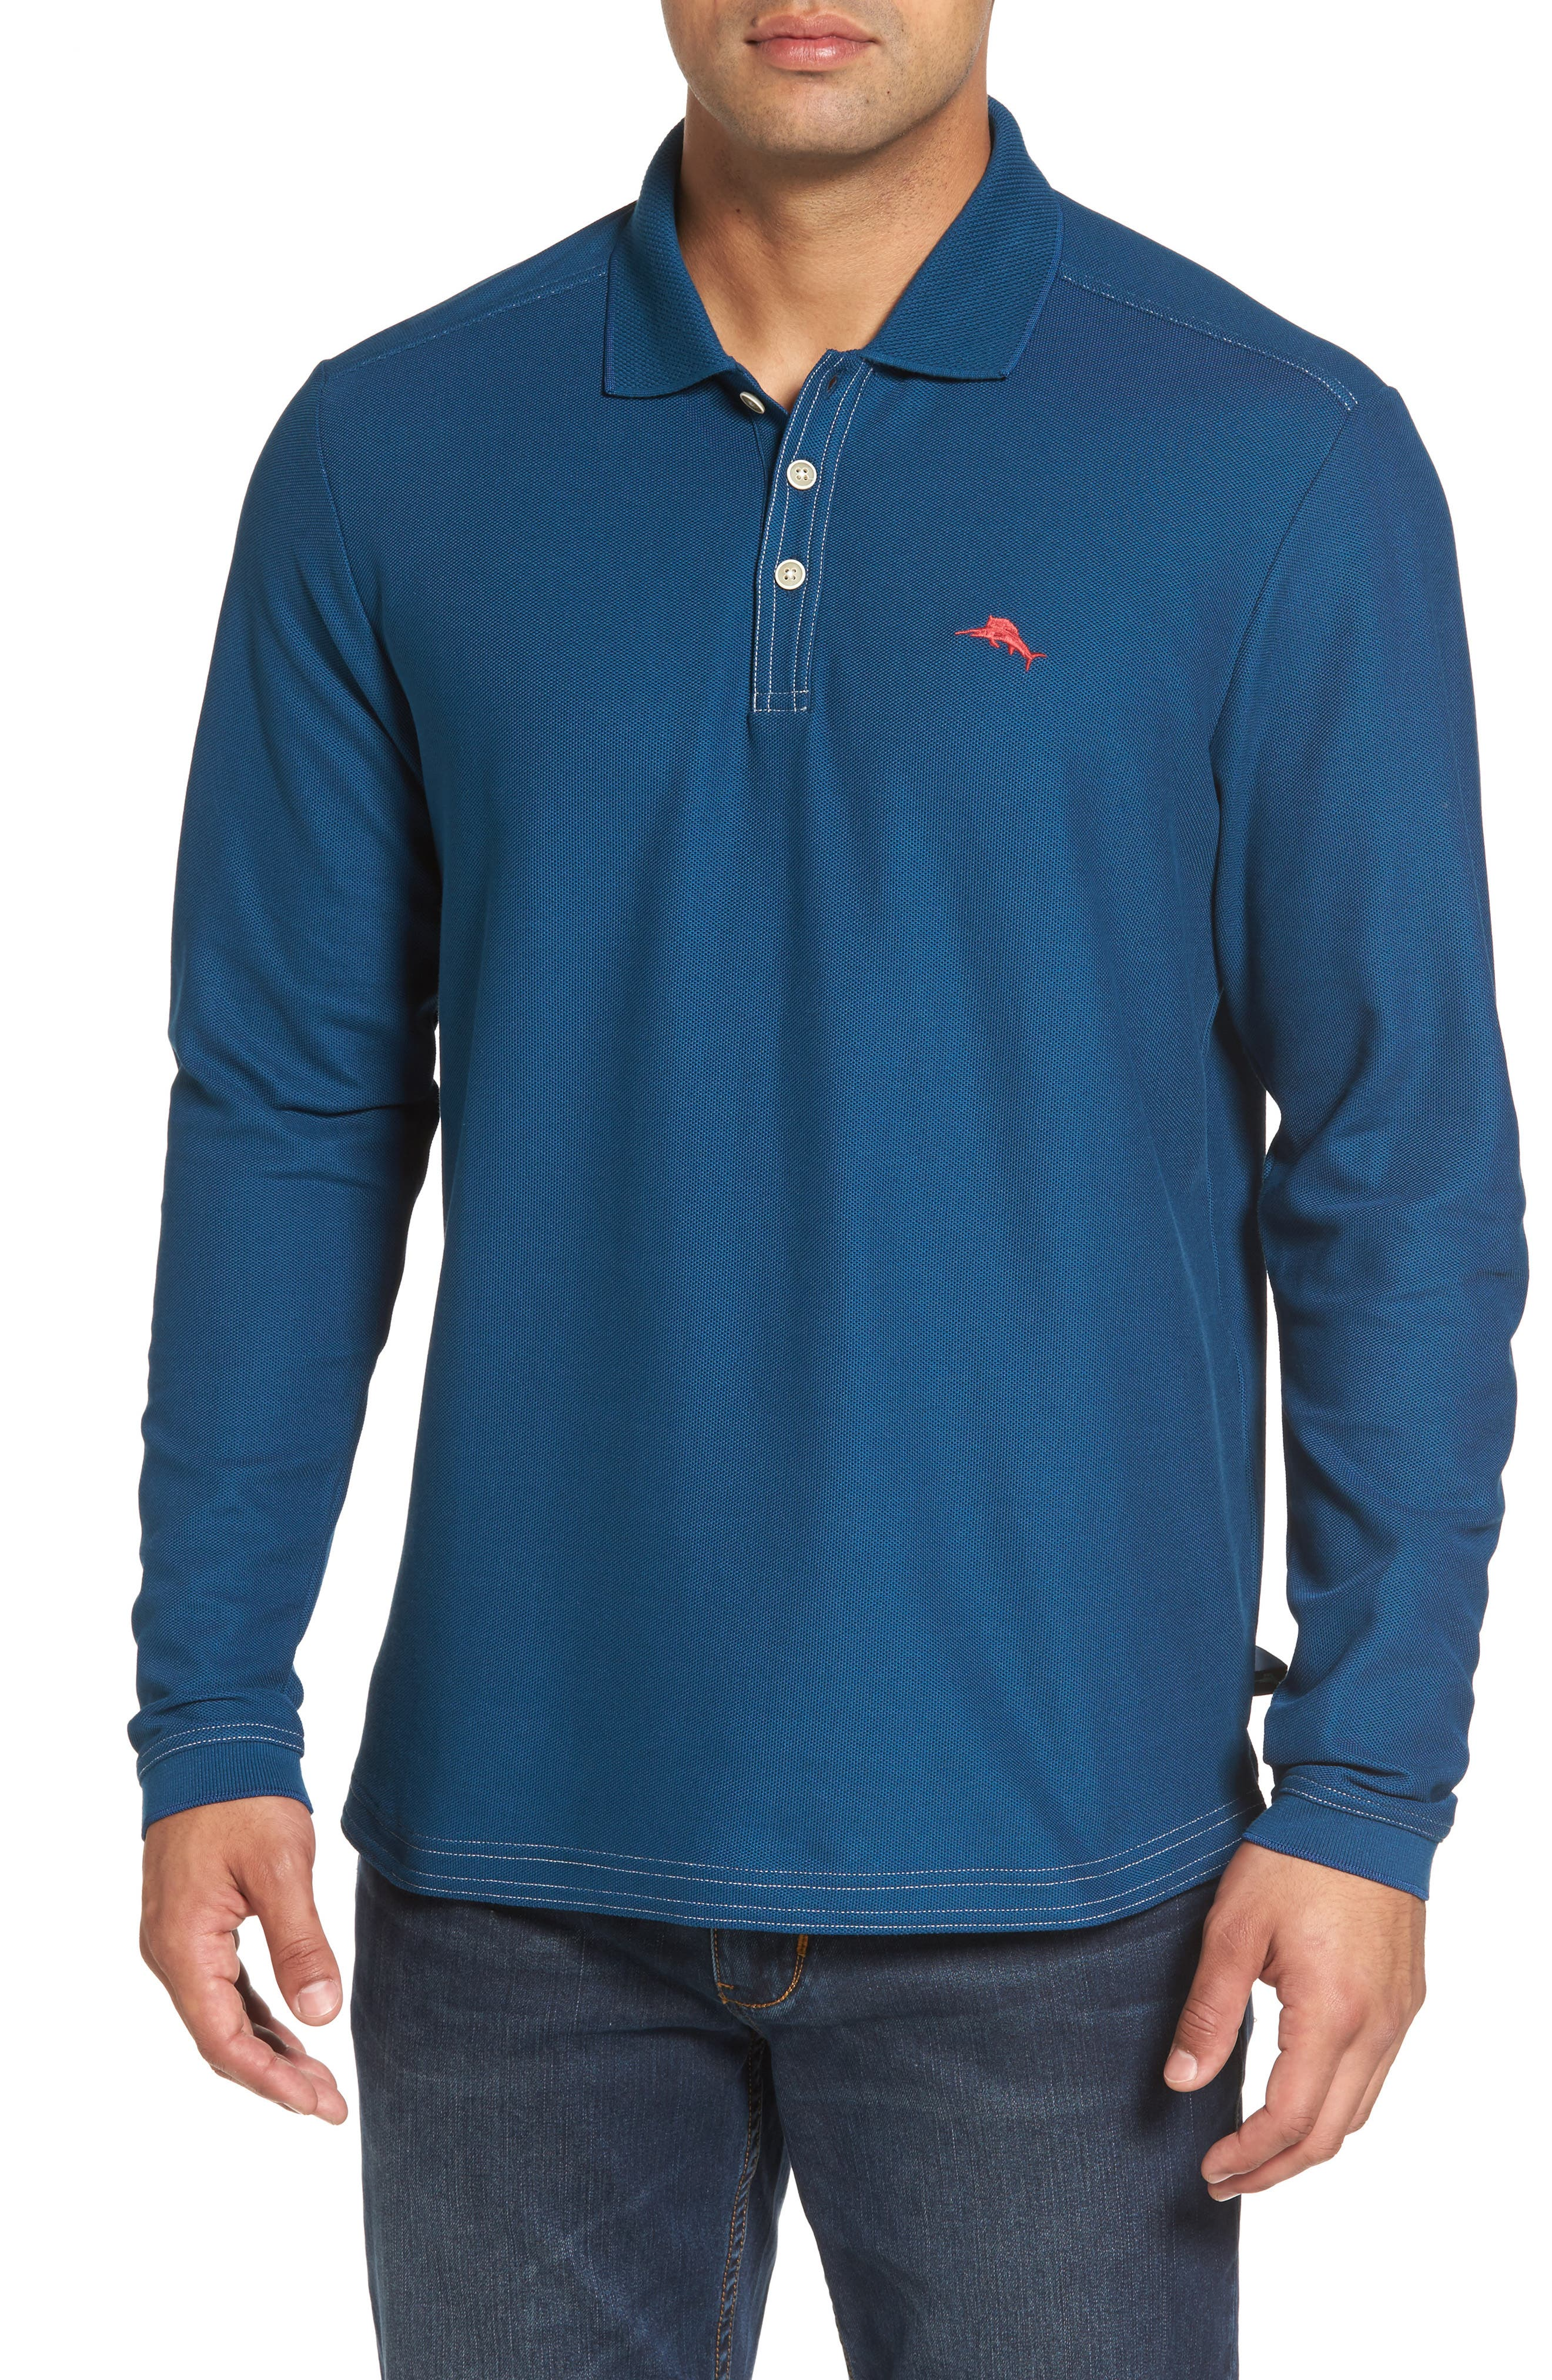 Emfielder Long Sleeve Polo,                             Main thumbnail 1, color,                             Slate Teal